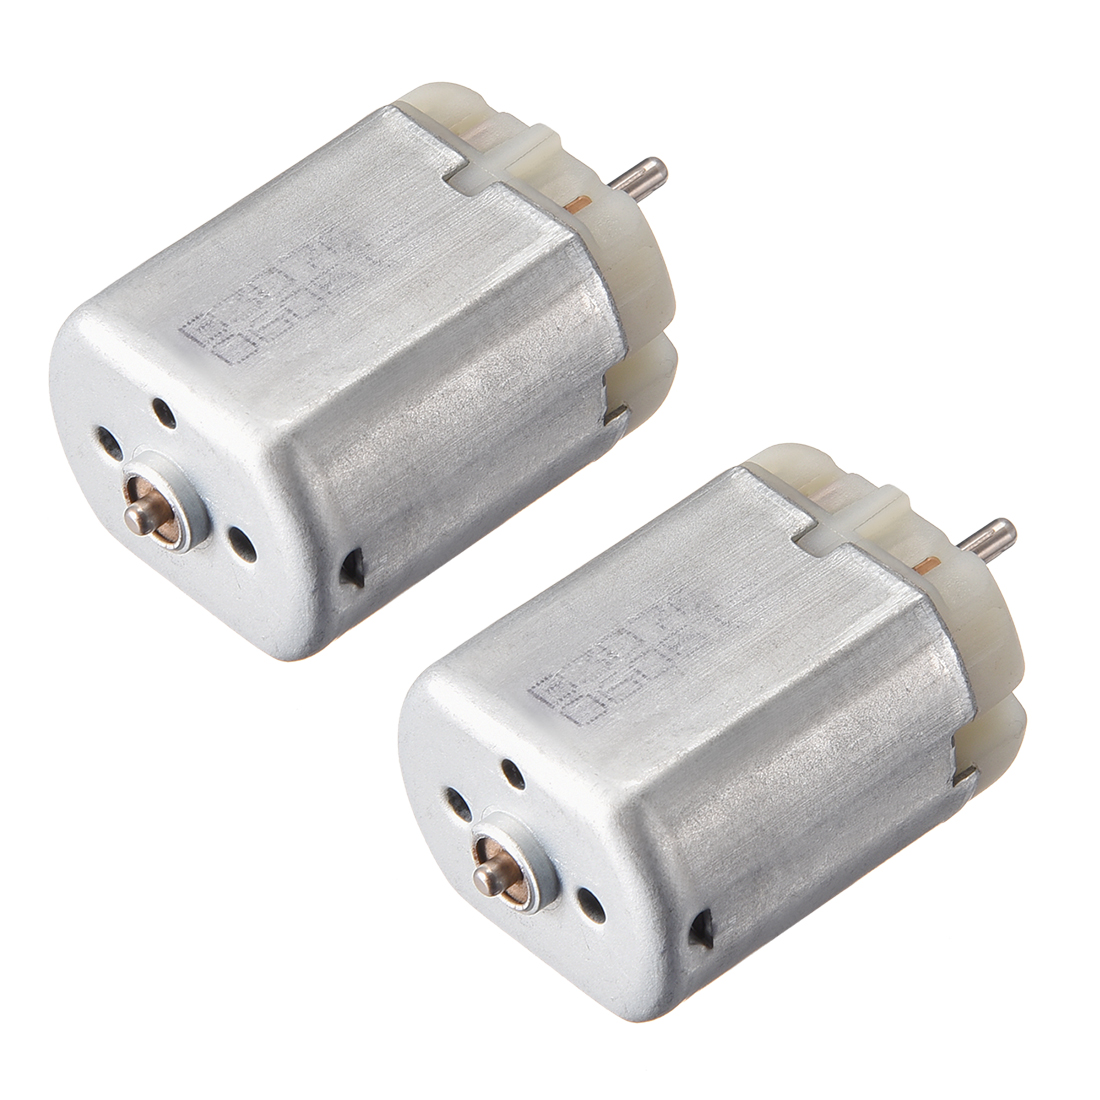 2 Pcs 12V 10000RPM DC Motor for Door Lock Locomotive Rearview Mirror Lock Motors